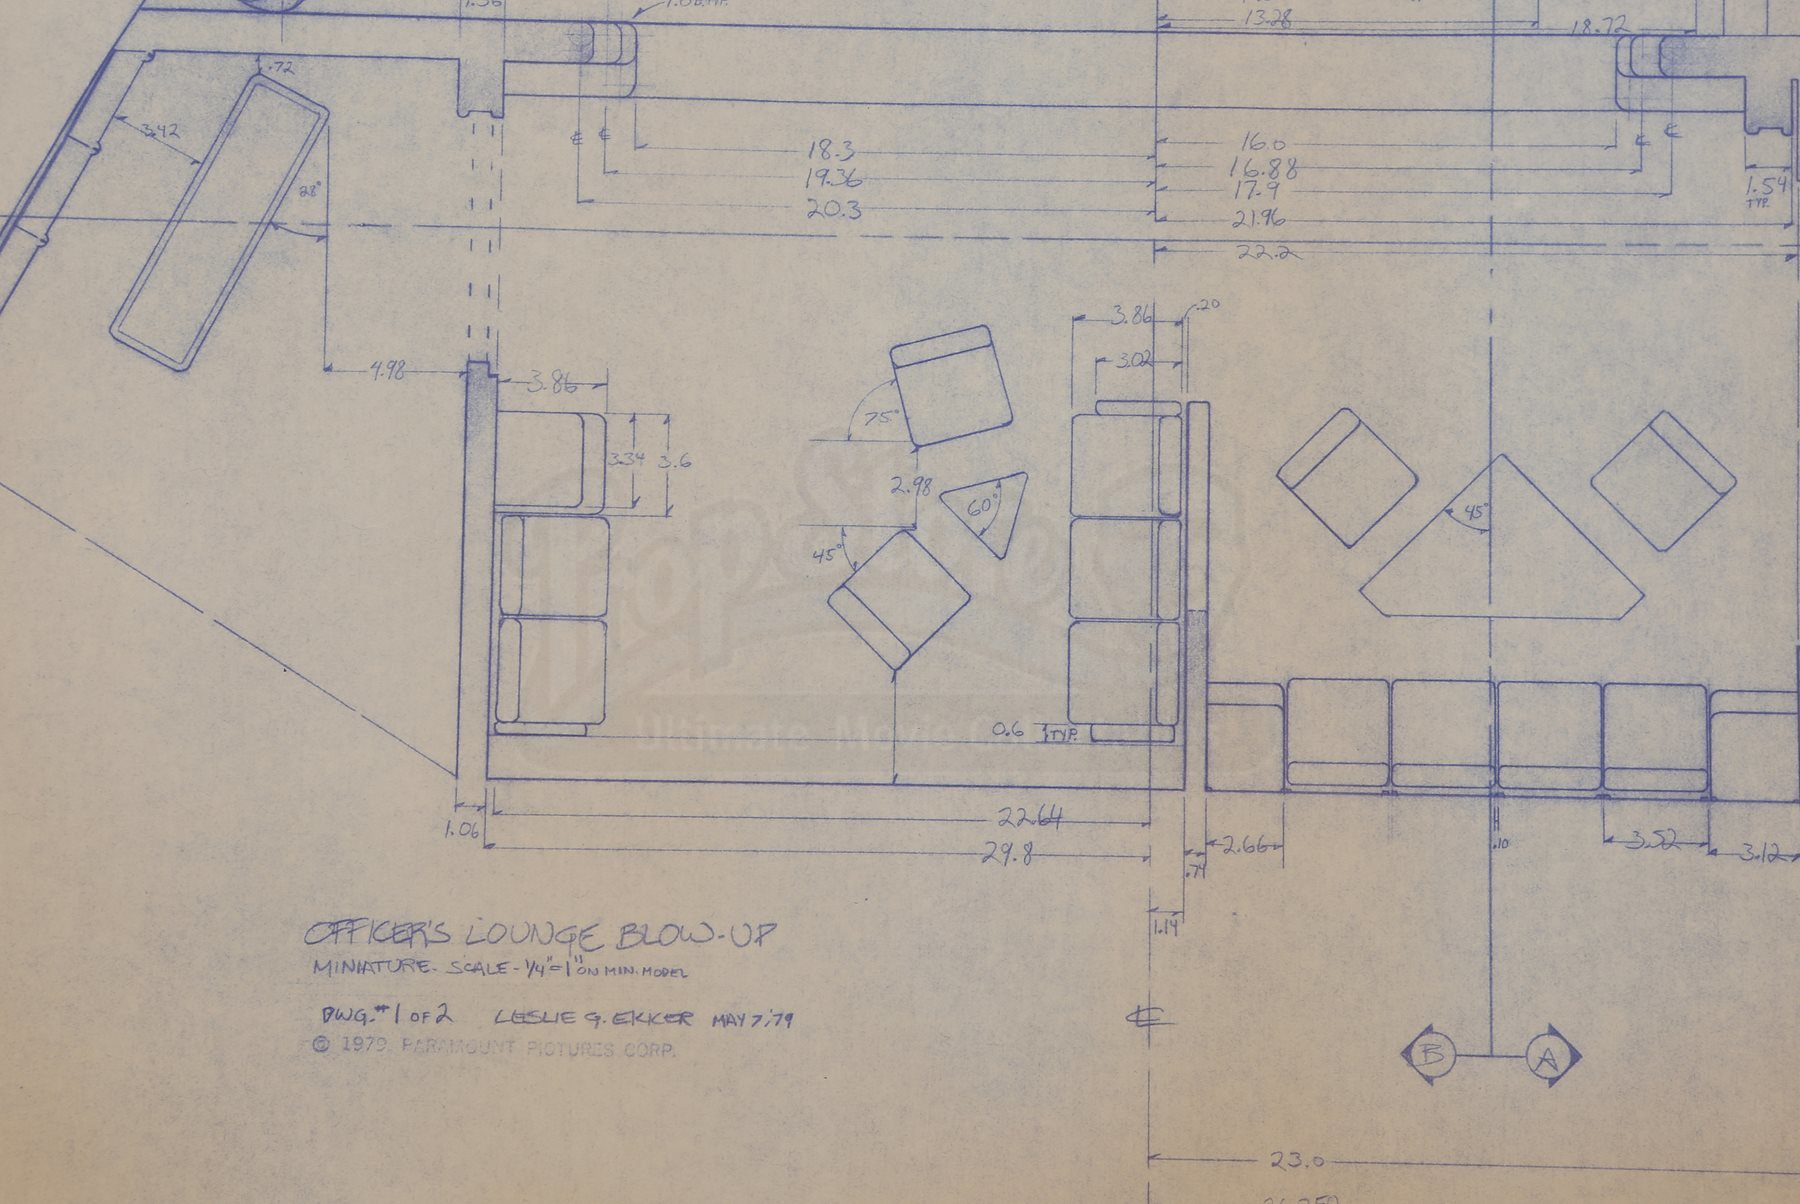 Star trek the motion picture officer 39 s lounge blueprint for Blueprint cost